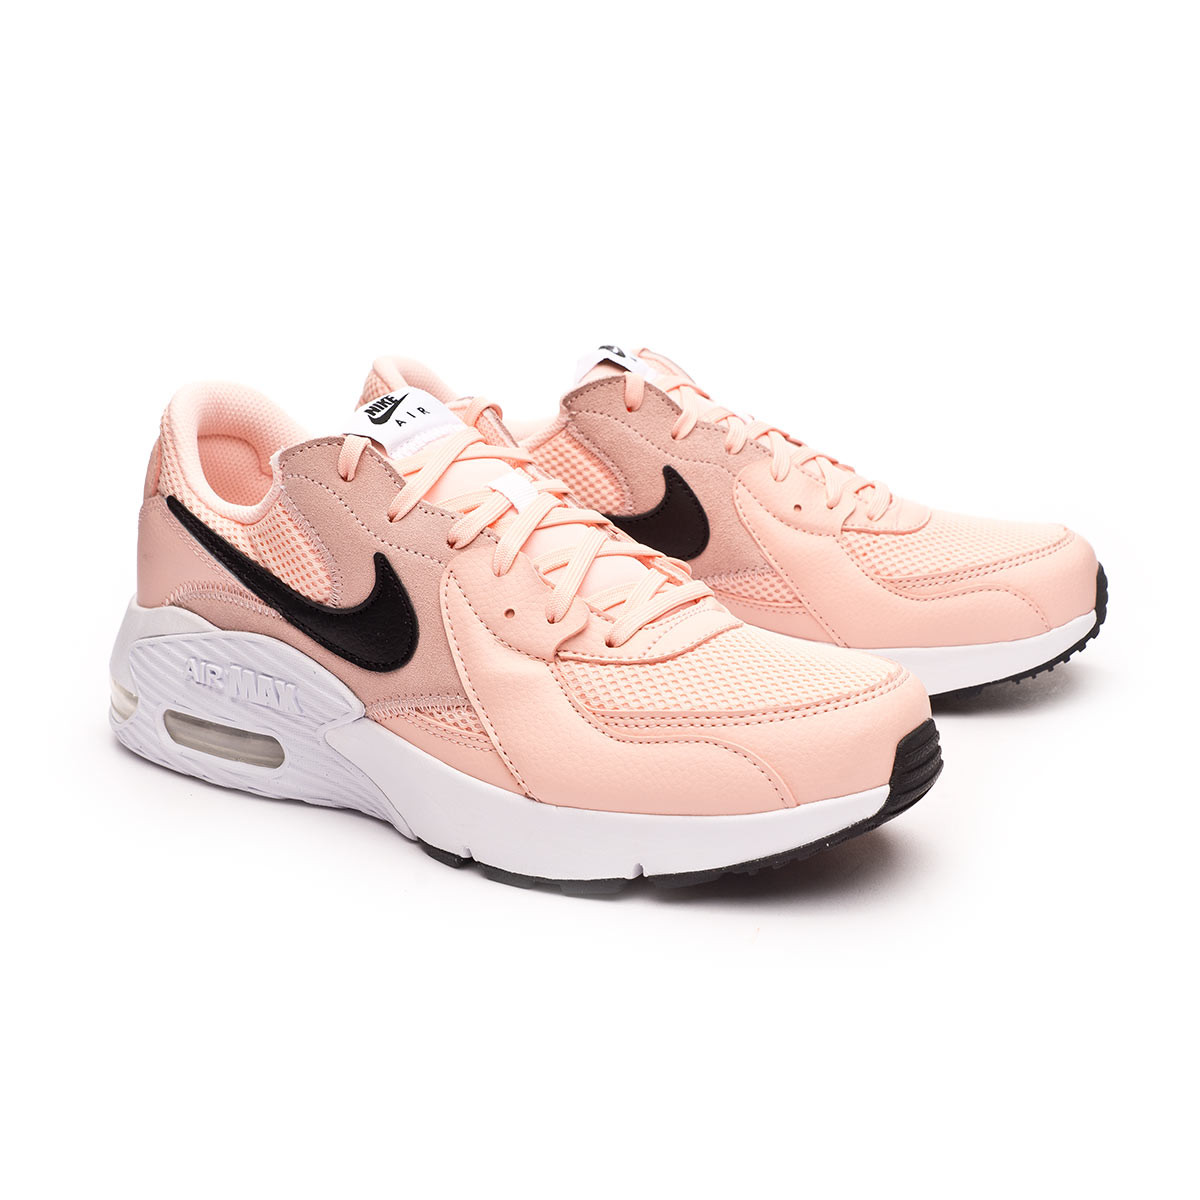 Mata Caprichoso collar  Trainers Nike Air Max Excee Mujer Washed coral-White-Black - Football store  Fútbol Emotion